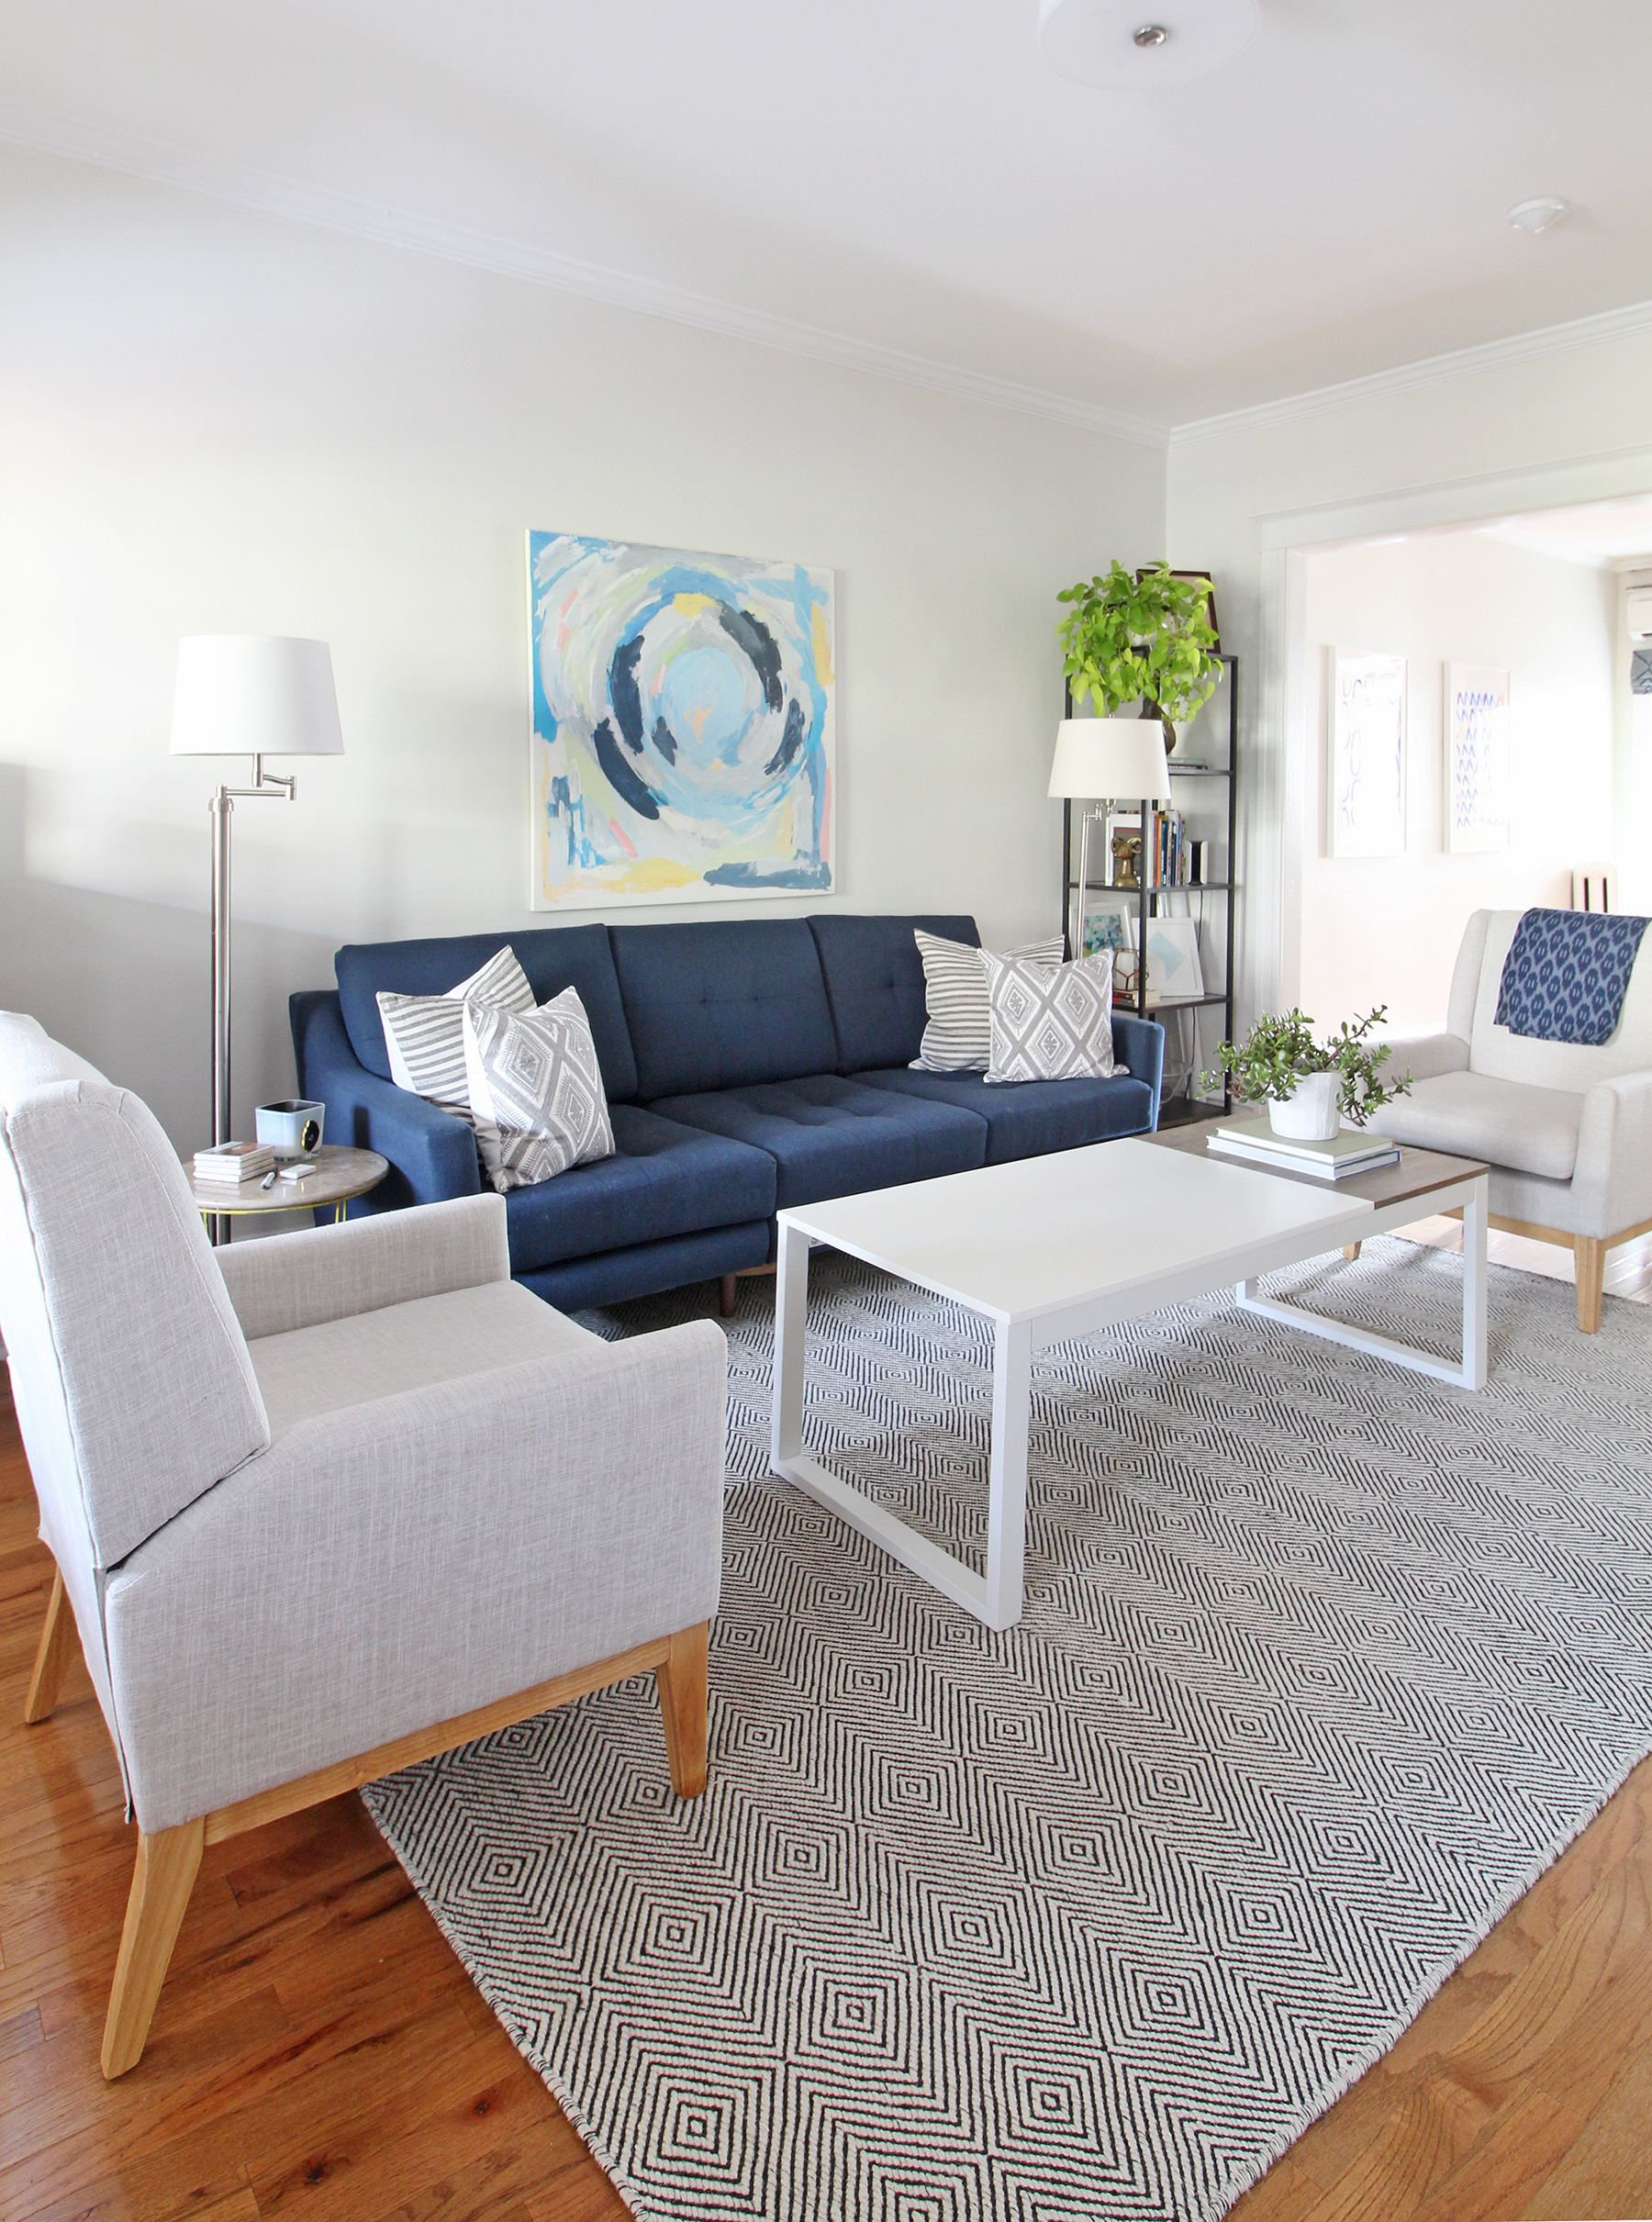 A 1930s row home in Philadelphia gets a big makeover. Come see the before and after of this home's living, dining, and kitchen open floor plan and get ideas for small space city living. Chaney's style is mid-century modern meets traditional that makes for an eclectic, cozy space.